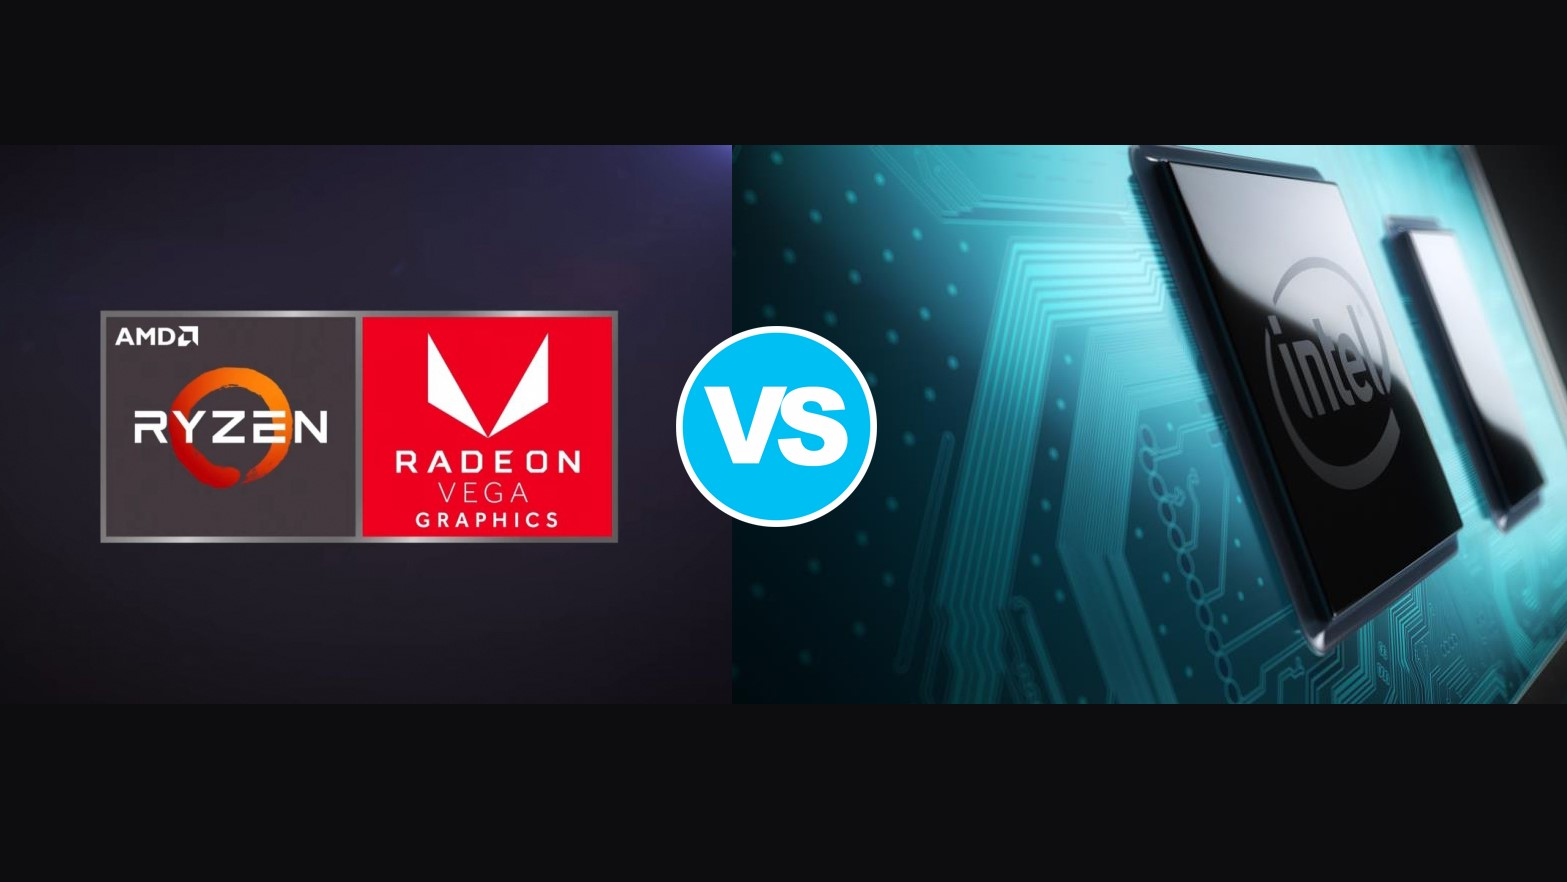 Amd Radeon Rx Vega 5 Renoir C4 Vs Intel Uhd Graphics G1 The Rx Vega 5 Is 27 Faster And Comes At A Lower Price